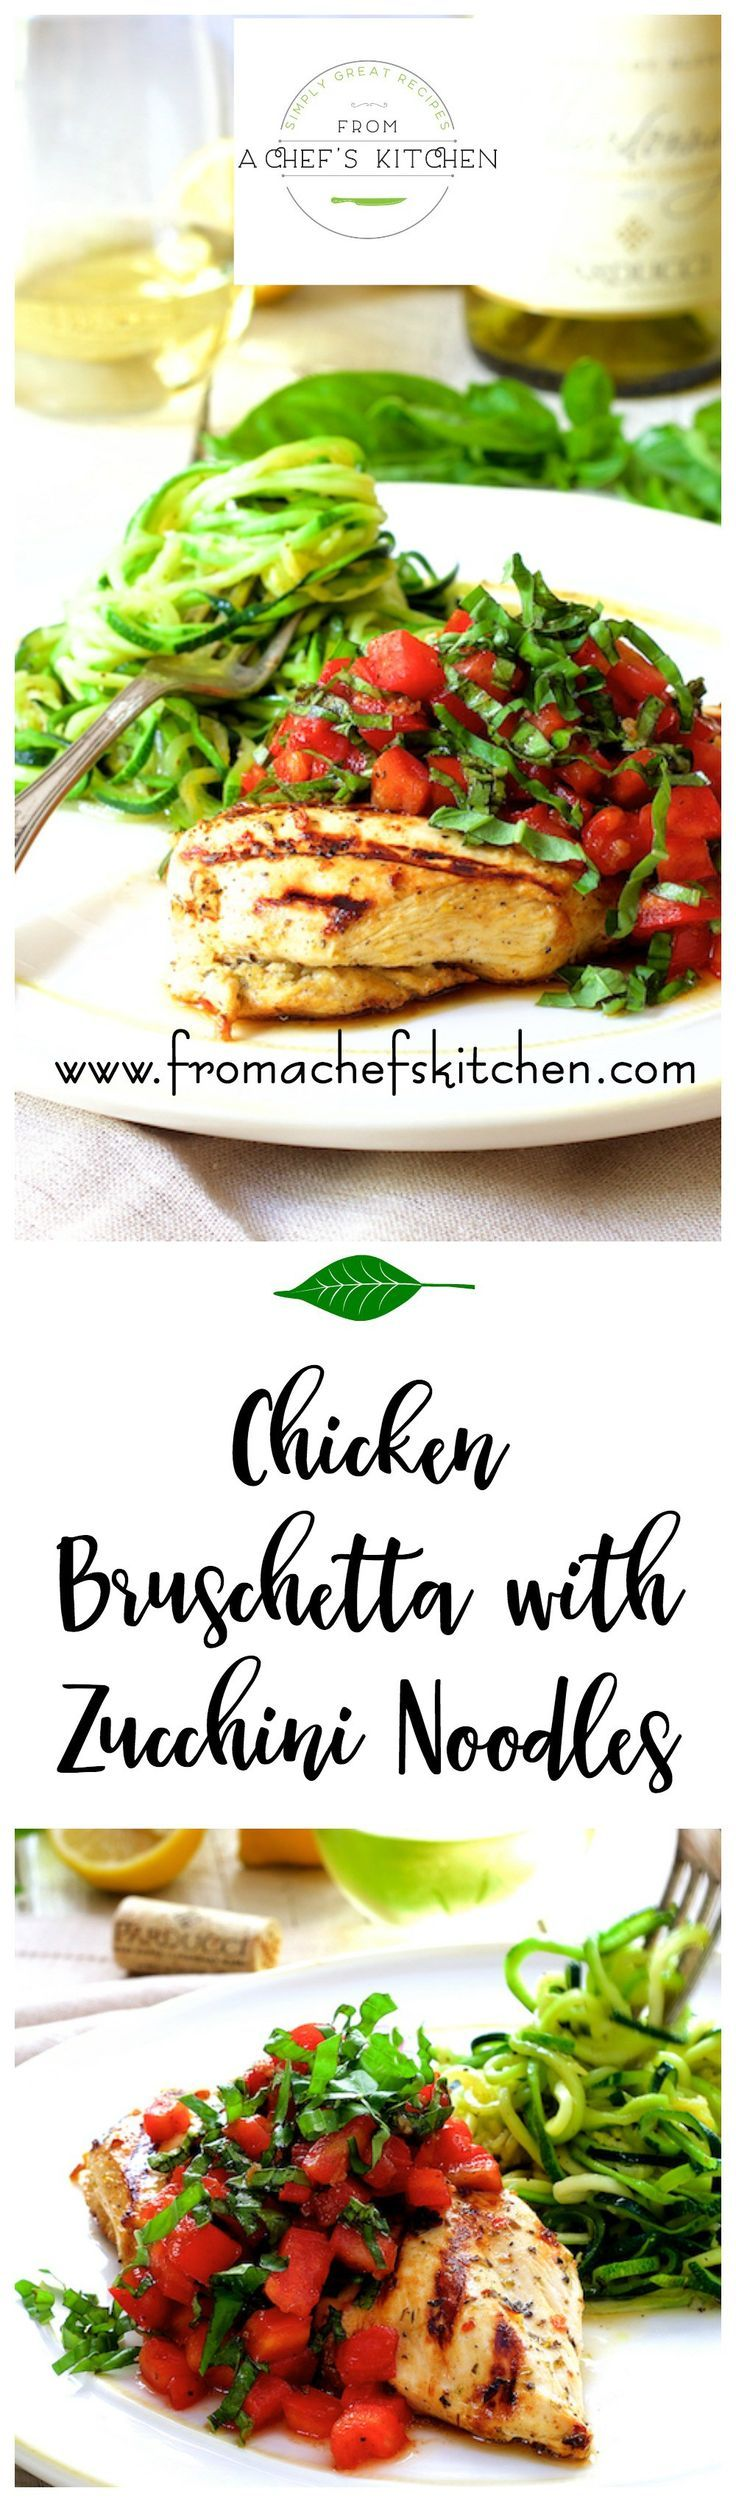 Chicken bruschetta with zucchini noodles is the perfect